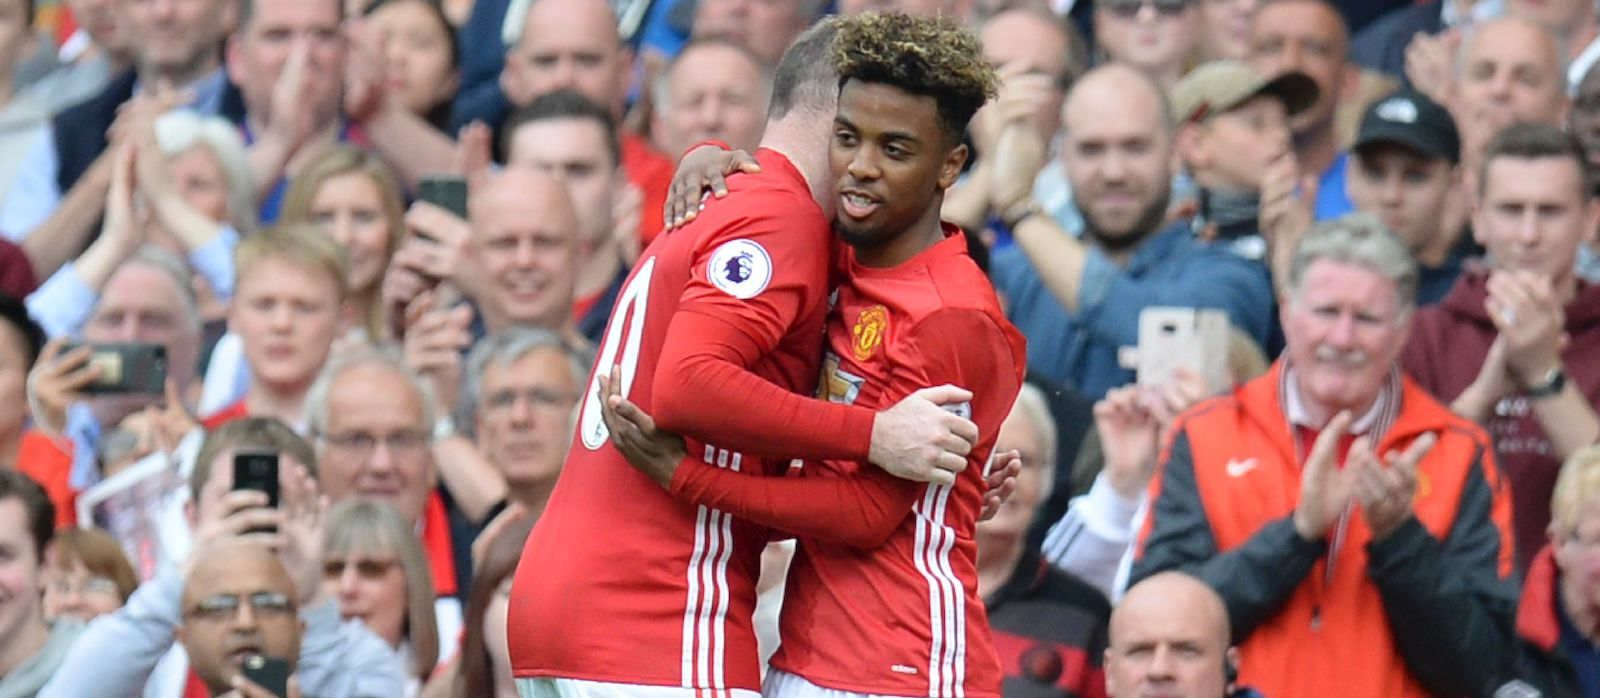 Angel Gomes' confidence and quality has risen thanks to first team chances, claims Jose Mourinho